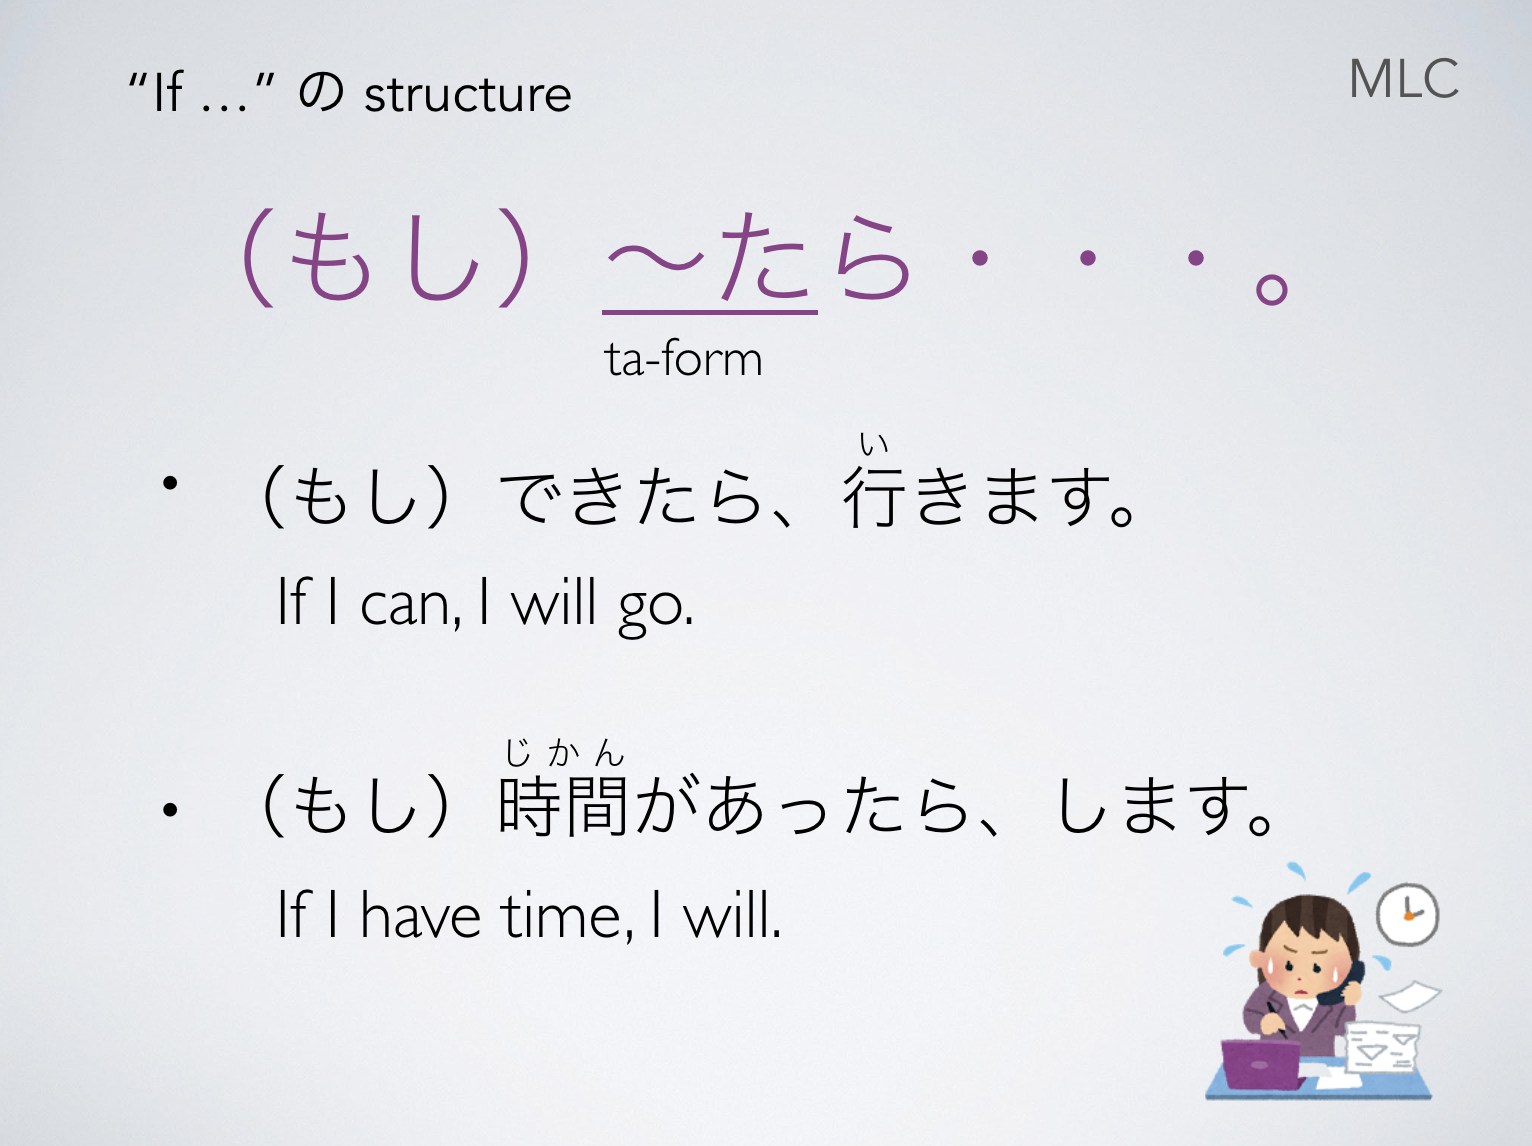 If Structure